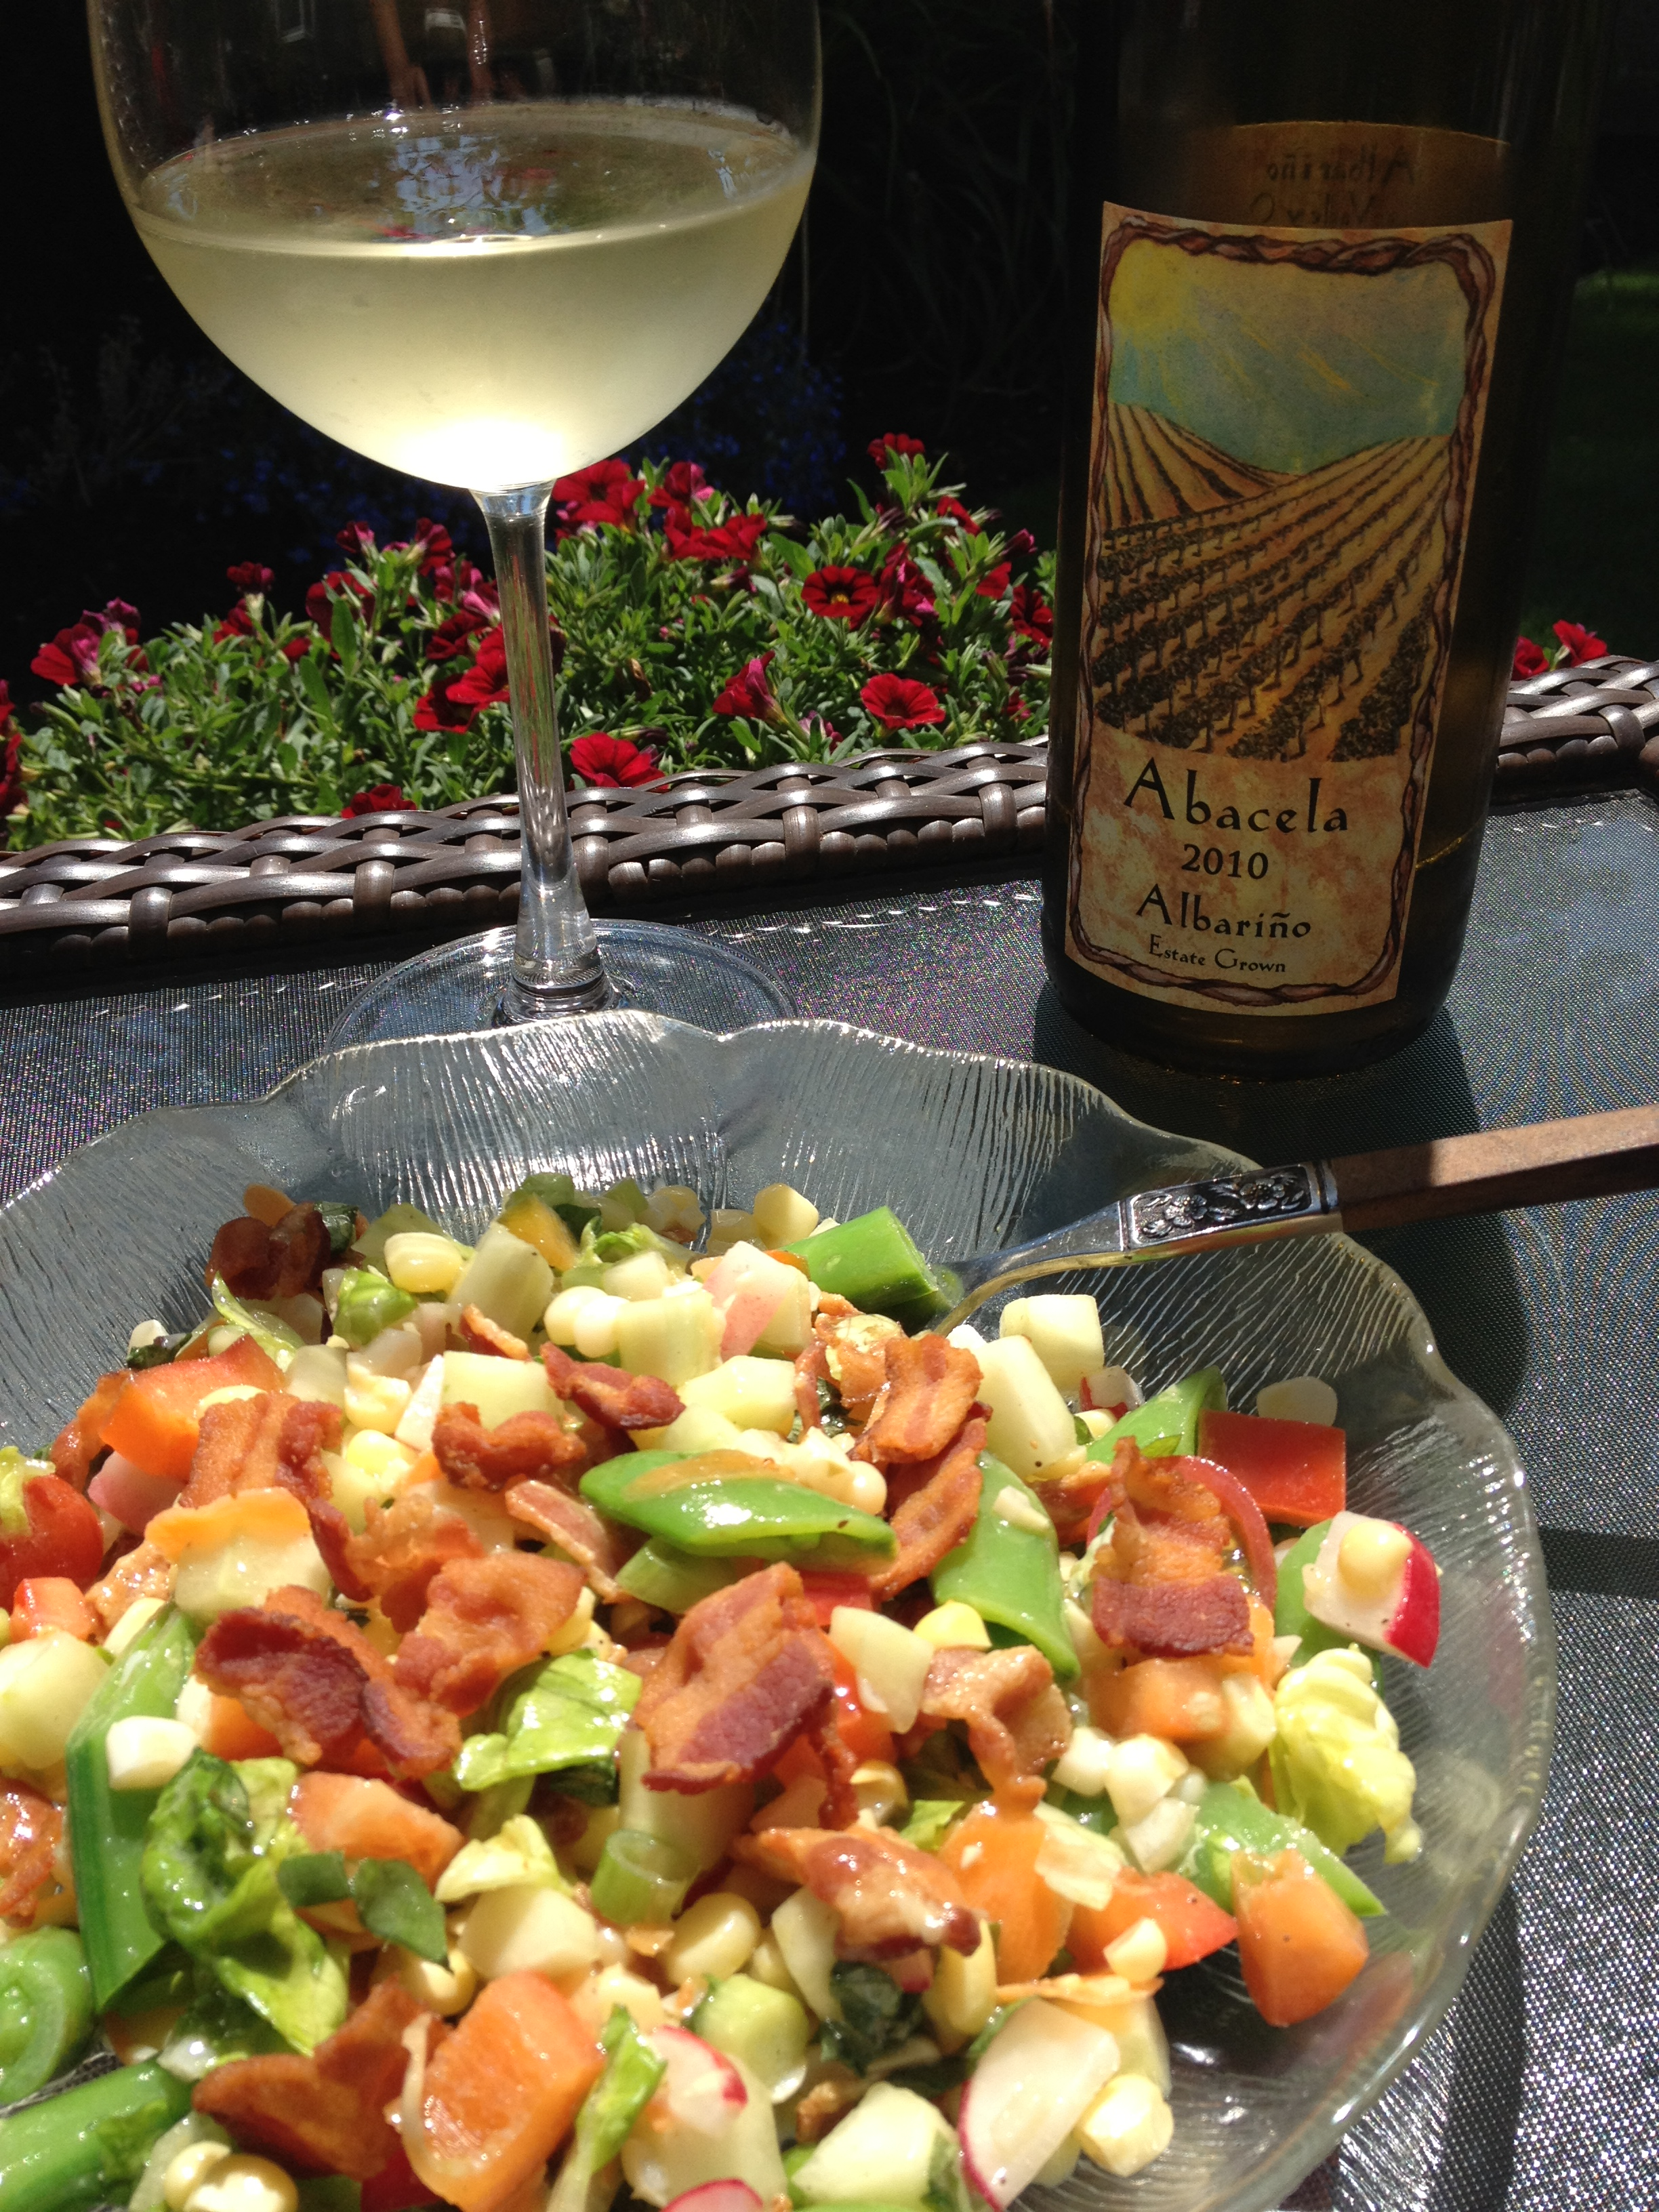 Pair This: Chop Salad with Corn, Snap Peas and Bacon & Abacela Albariño